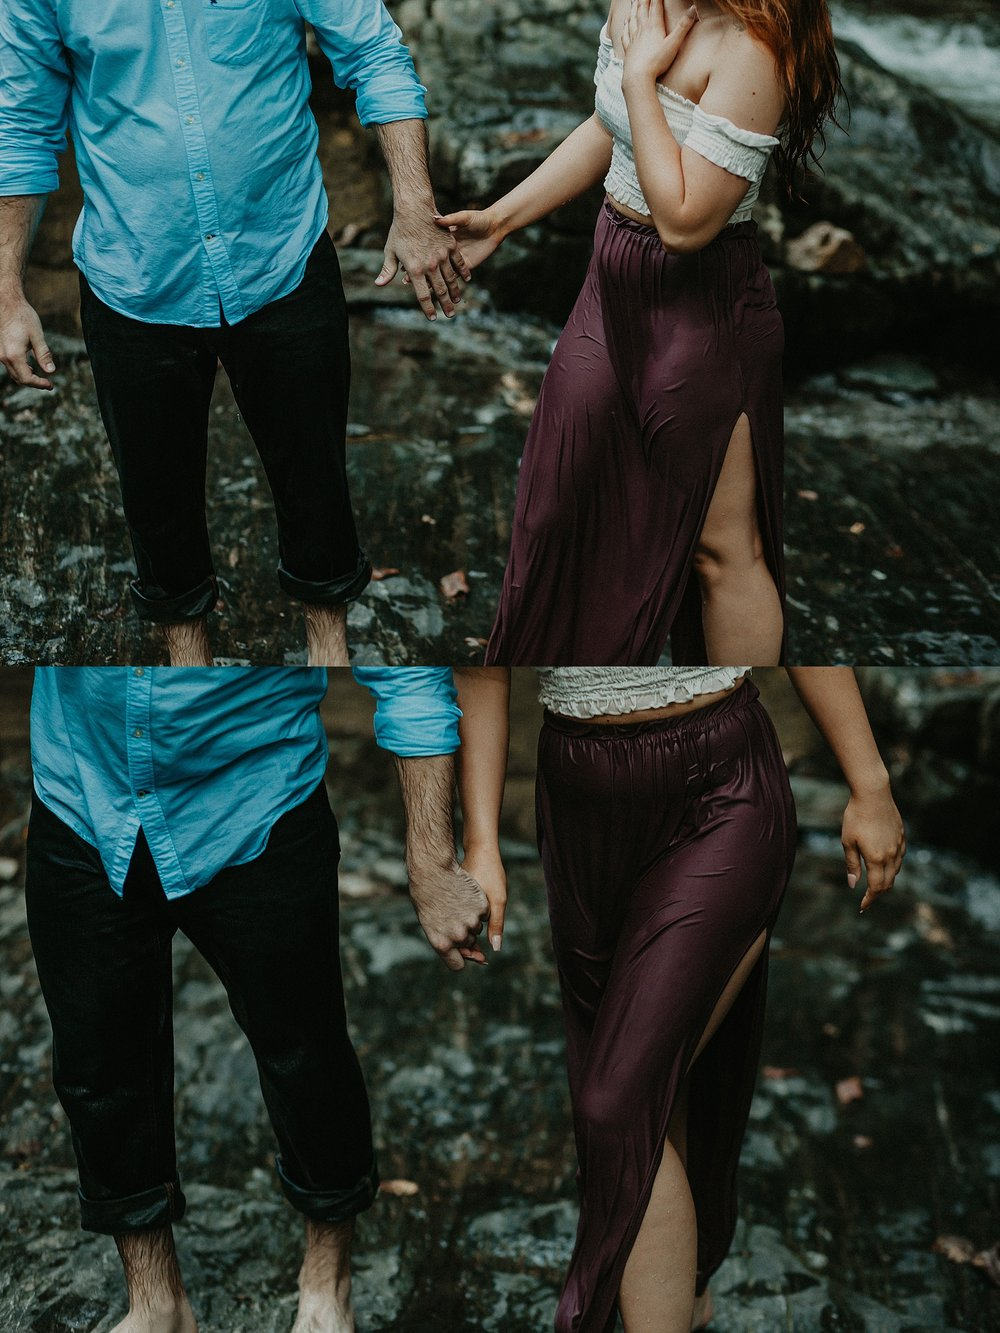 Summer Evening Boho Couples Session at Kilgore Falls Waterfalls in Pylesville Maryland_0086.jpg